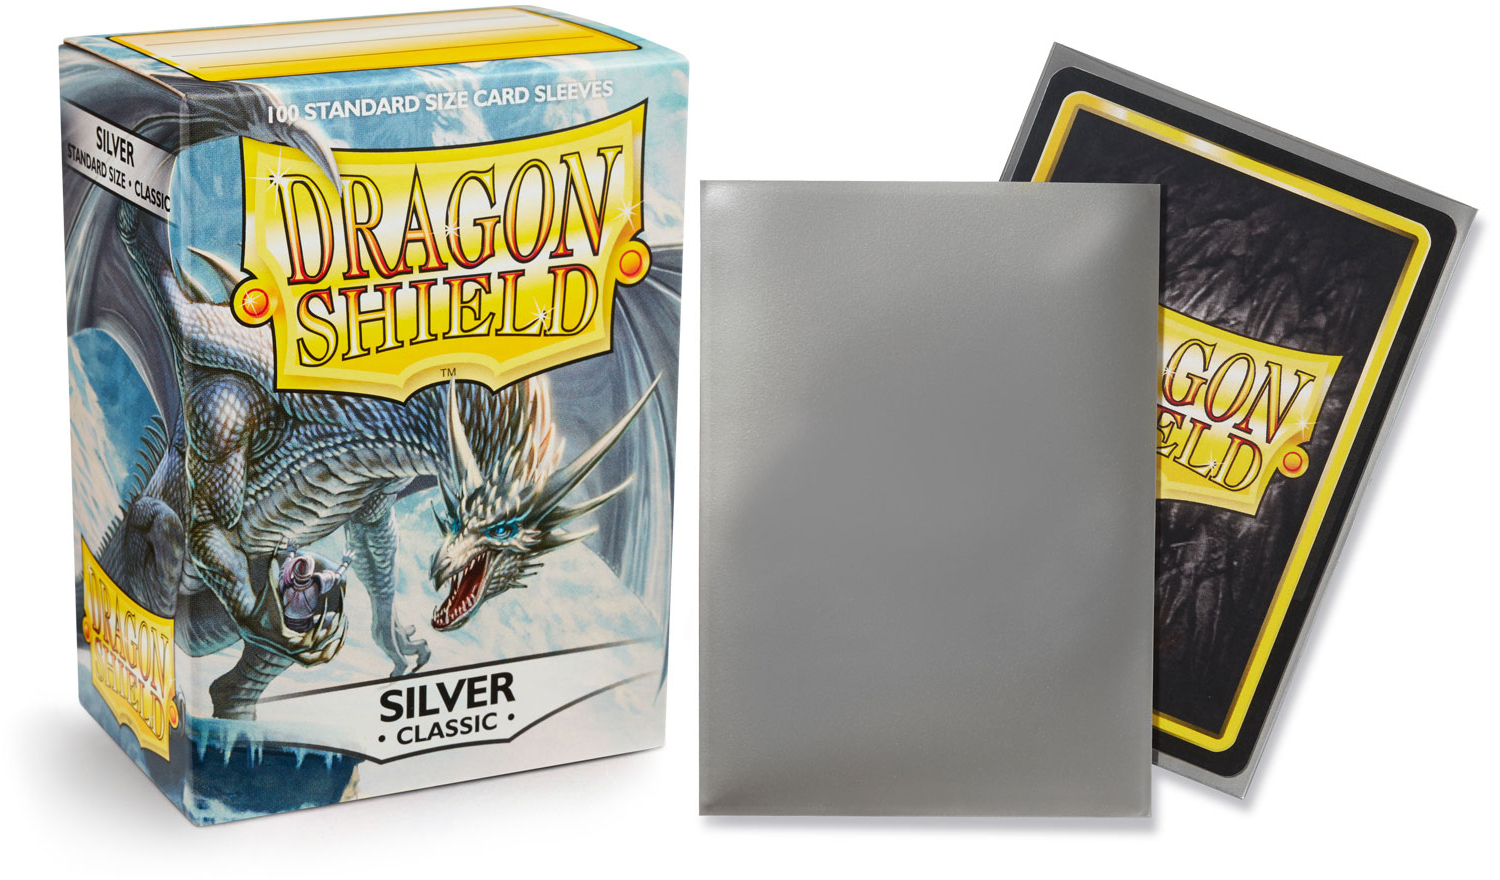 Dragon Shield Classic Standard-Size Sleeves - Silver - 100ct